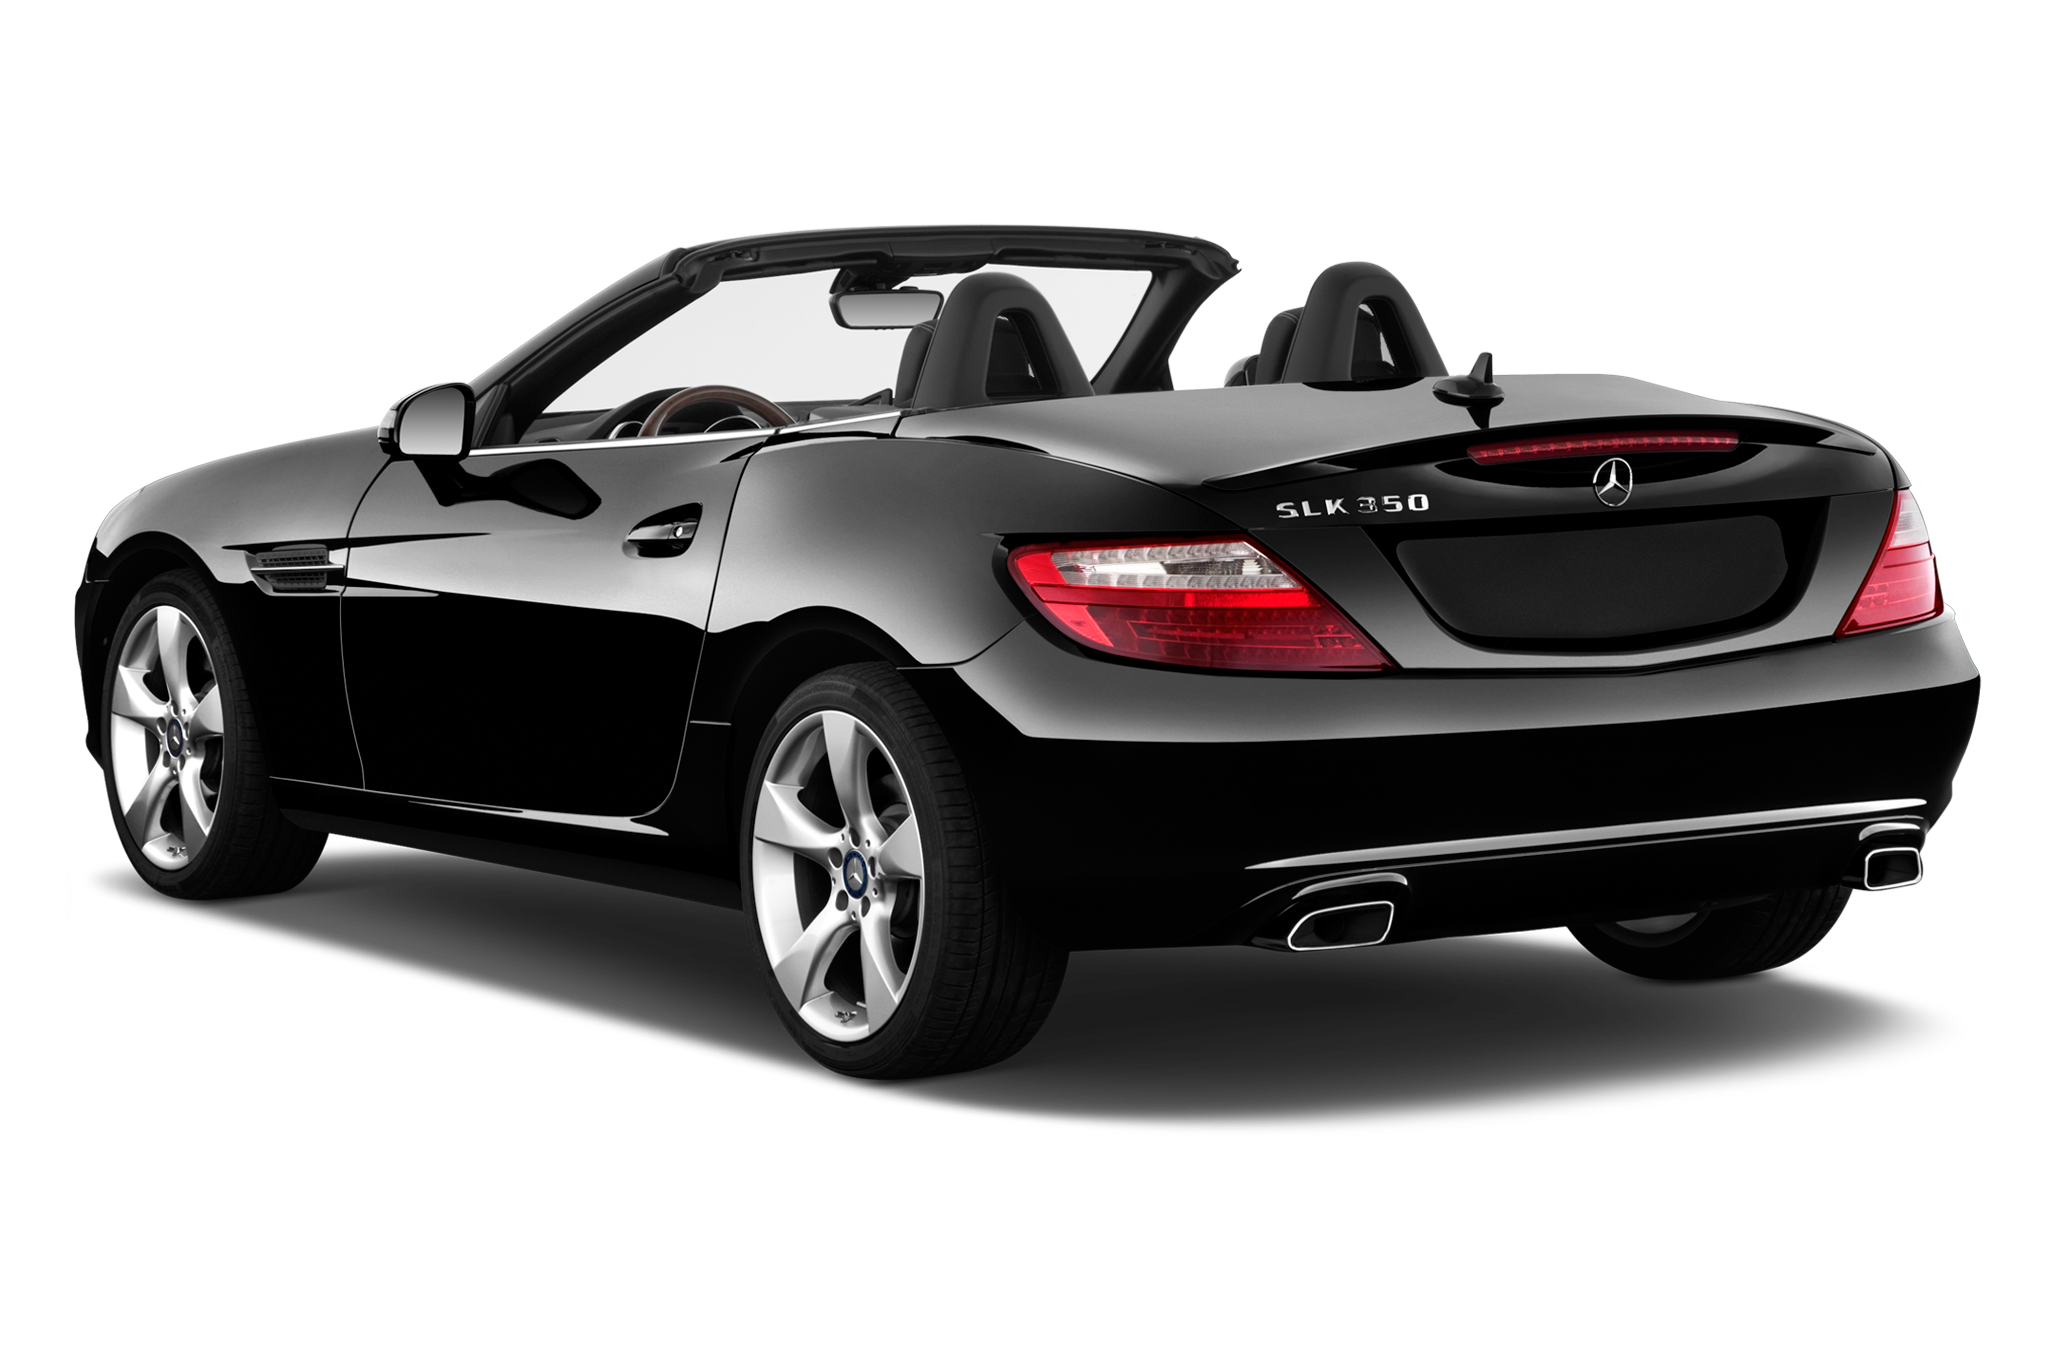 2016 Mercedes-Benz SLK Updated with New Engine on 2016 mercedes slk 350, bmw slk 350, 2008 mercedes slk 350, 2006 mercedes slk 350, 2014 mercedes slk 350, mbz slk 350, mb slk 350, 2015 mercedes slk 350,